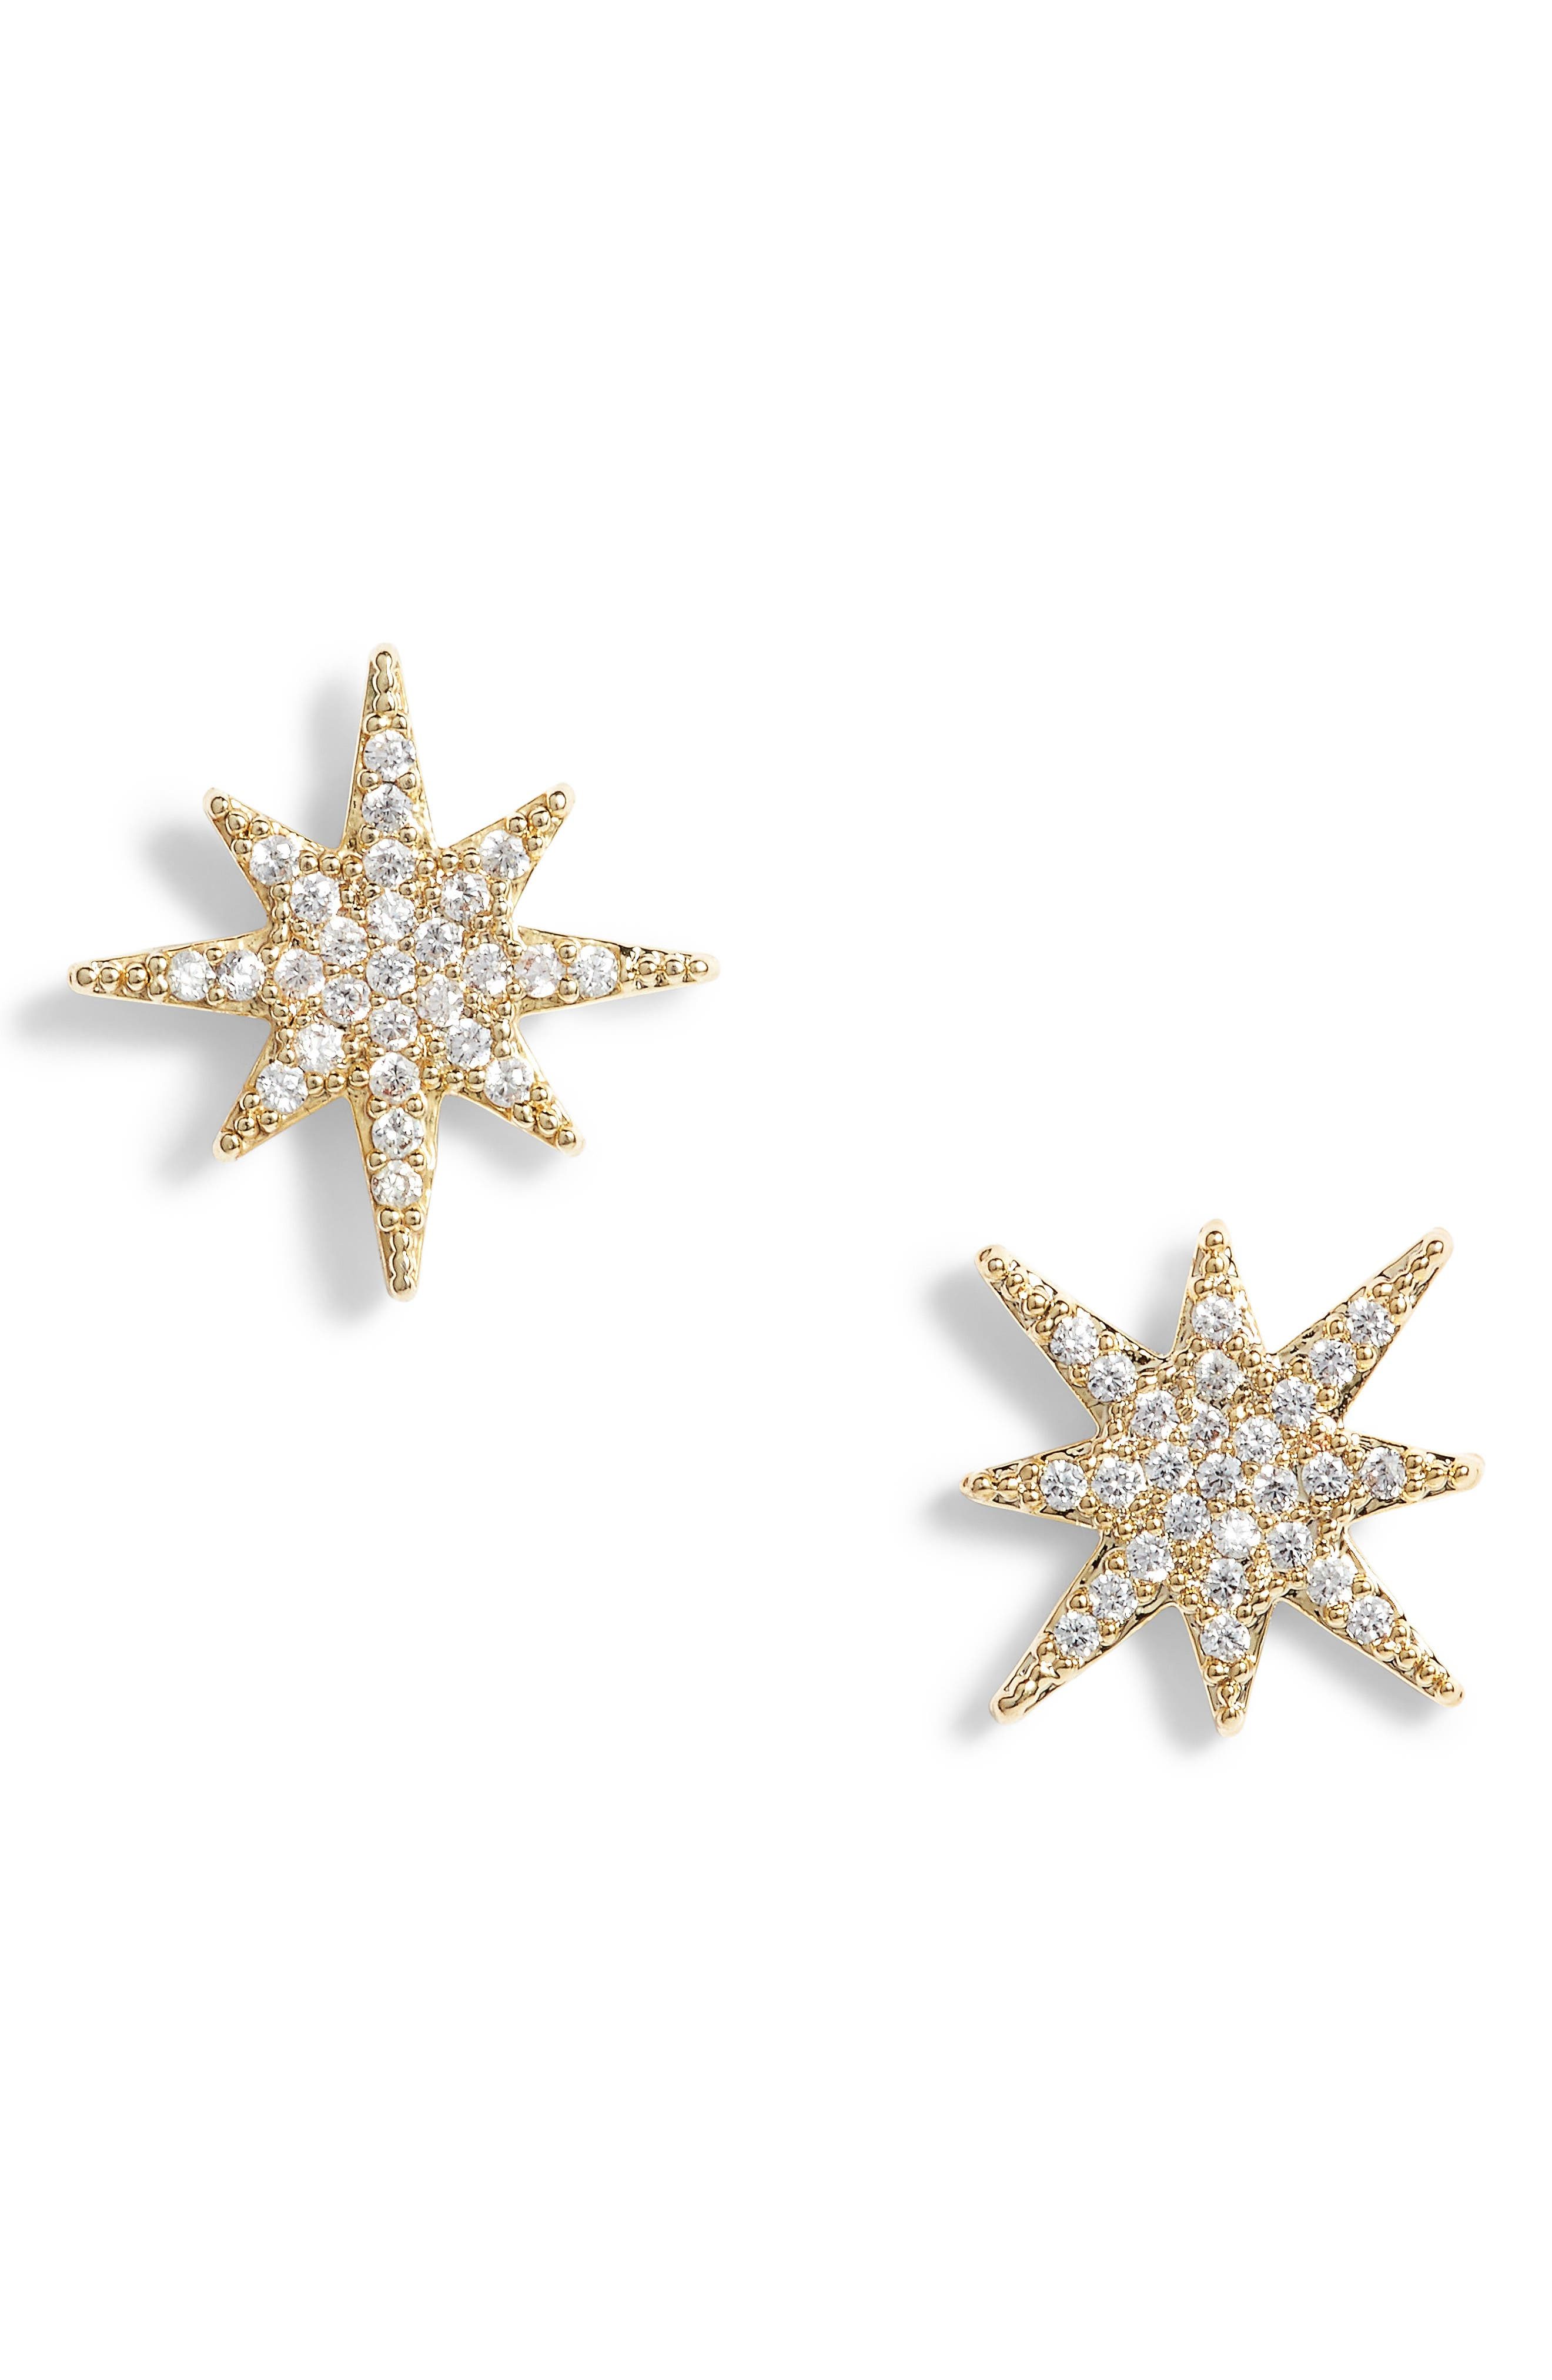 Small Starburst Crystal Earrings,                         Main,                         color, Gold